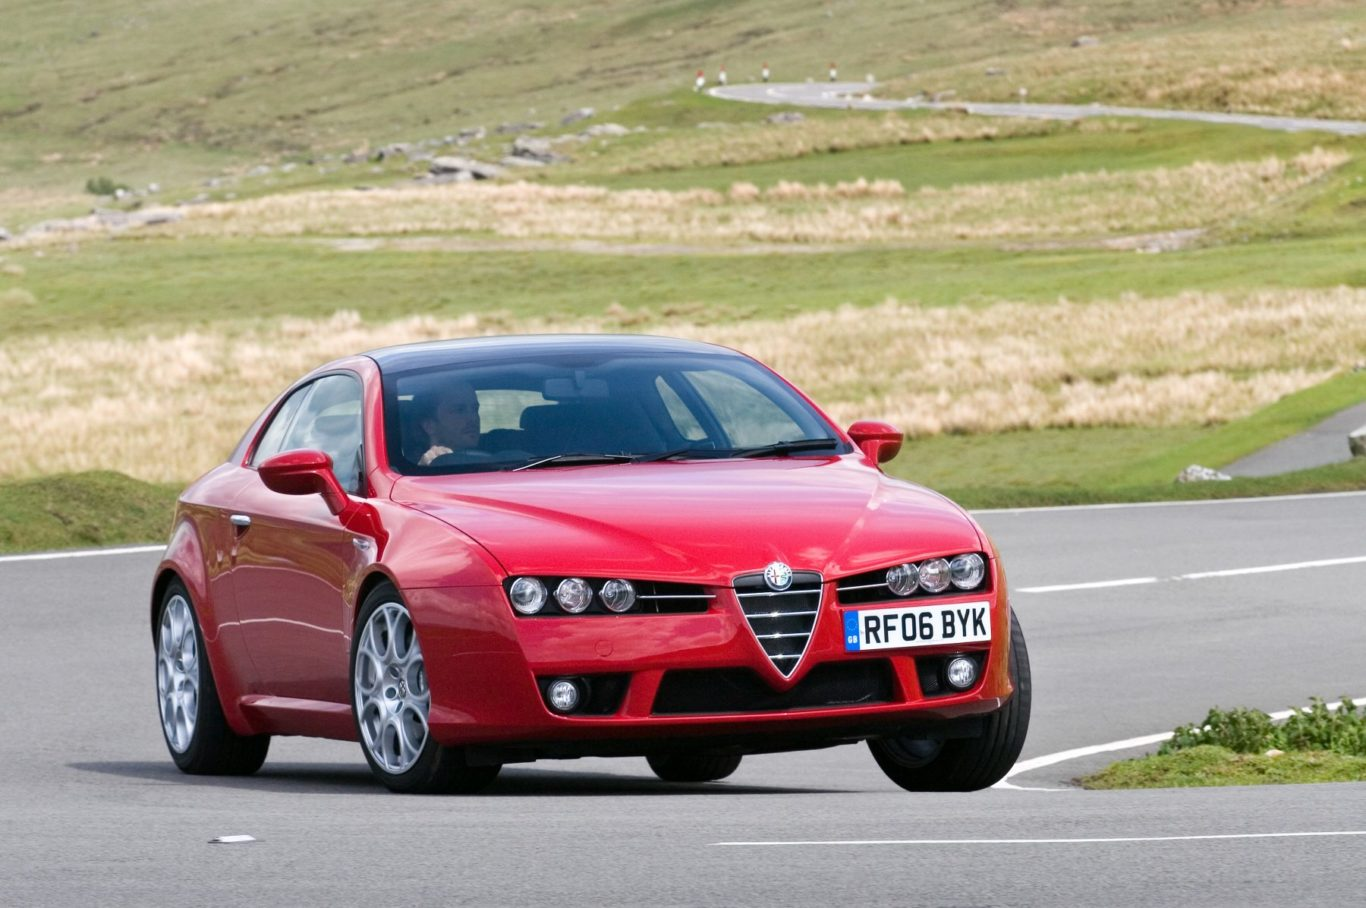 The Brera was famed for its elegant styling